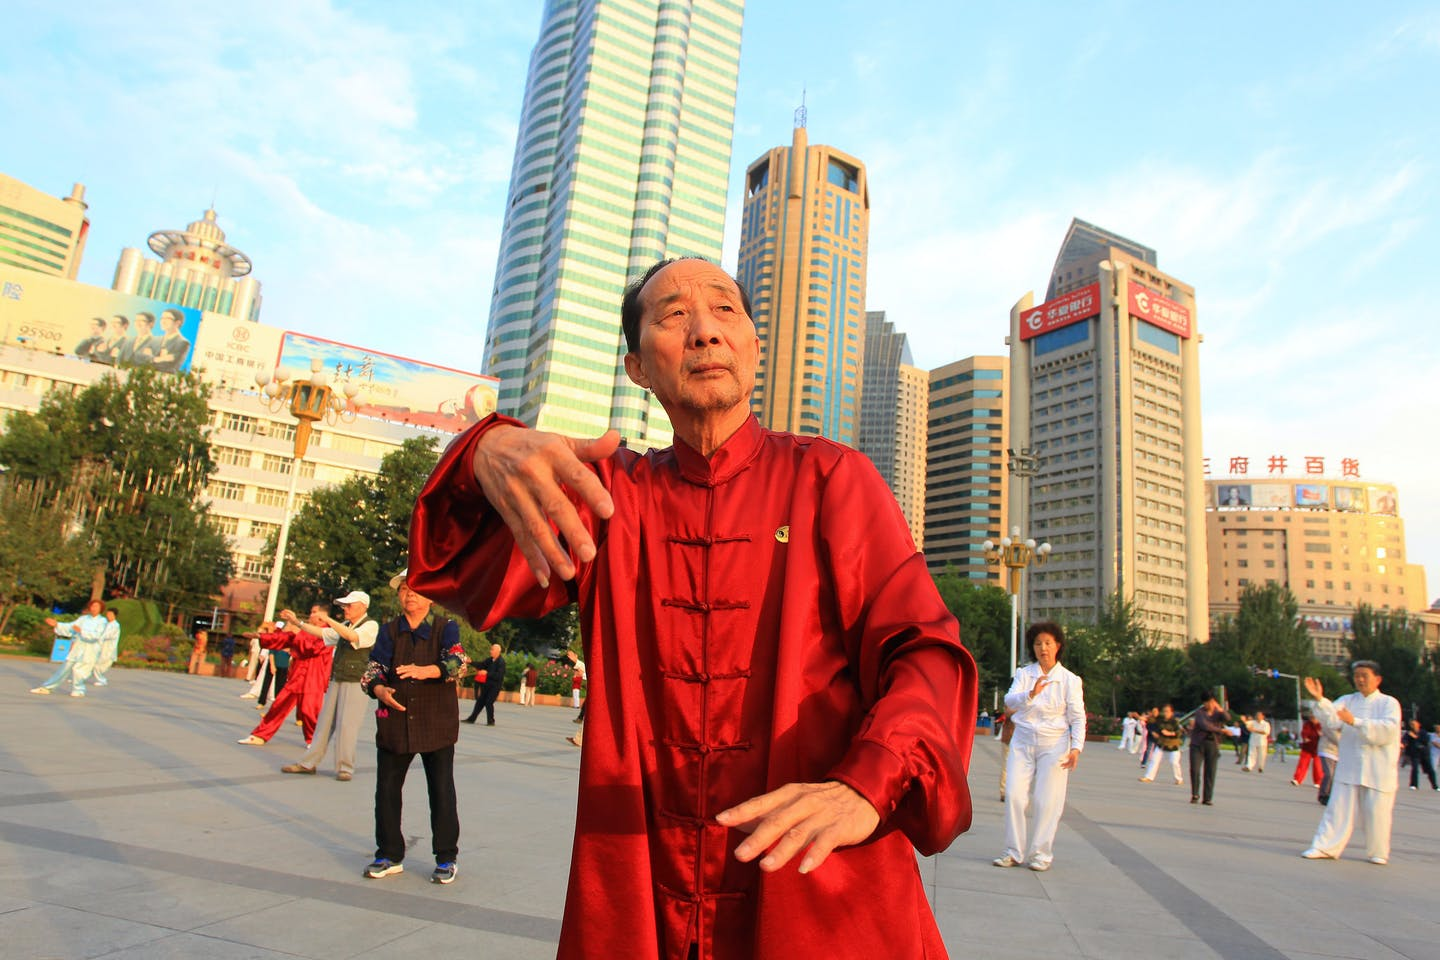 People do taichi in the People's Square of Urumqi, China